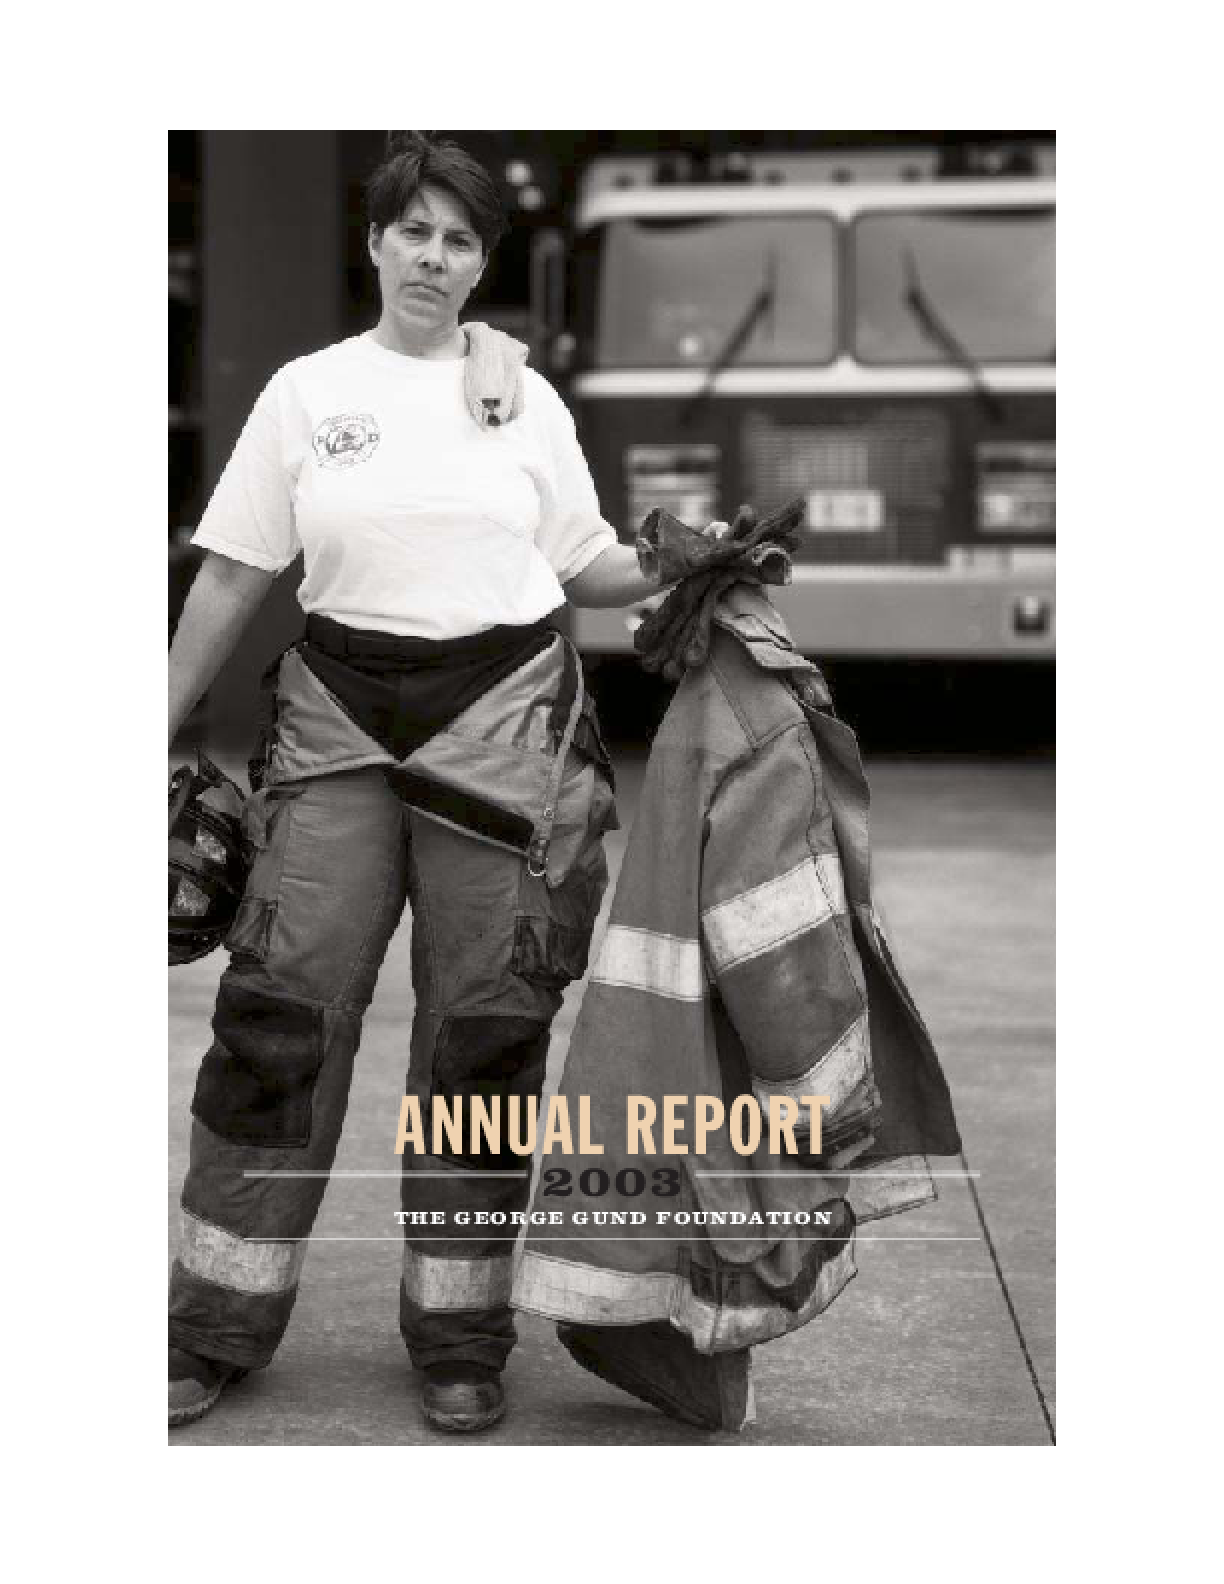 George Gund Foundation - 2003 Annual Report